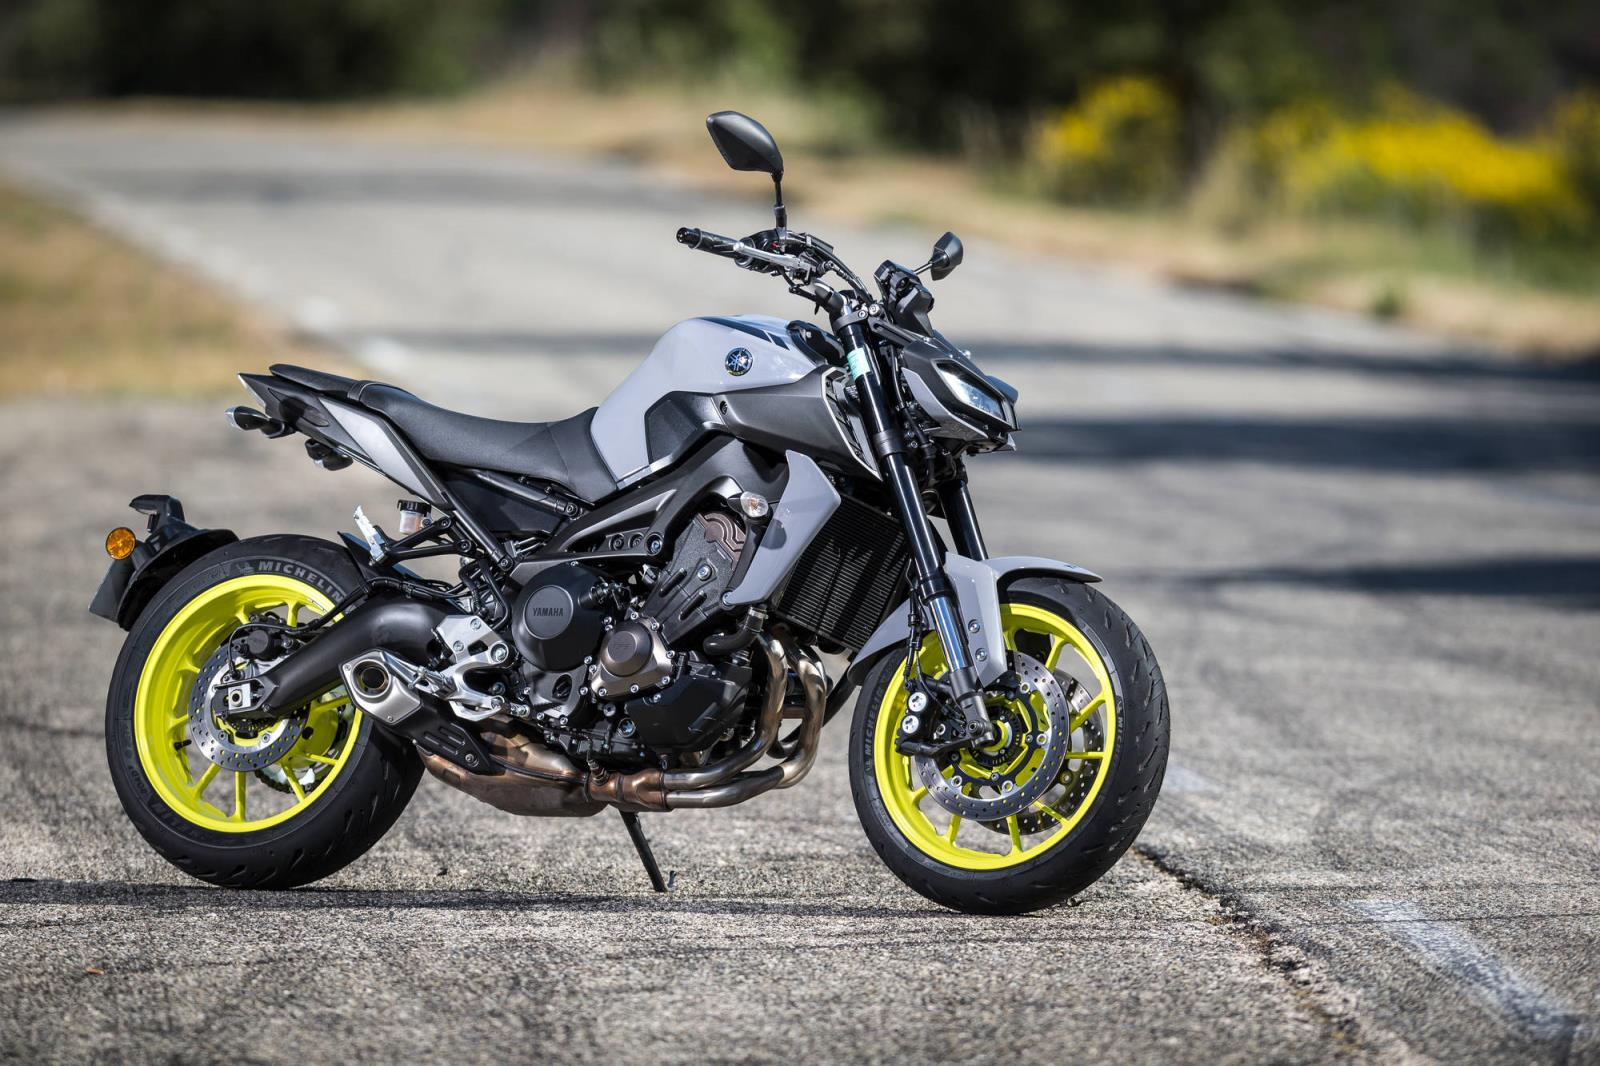 MICHELIN_Photo_Road5_Yamaha_MT09_015.jpg